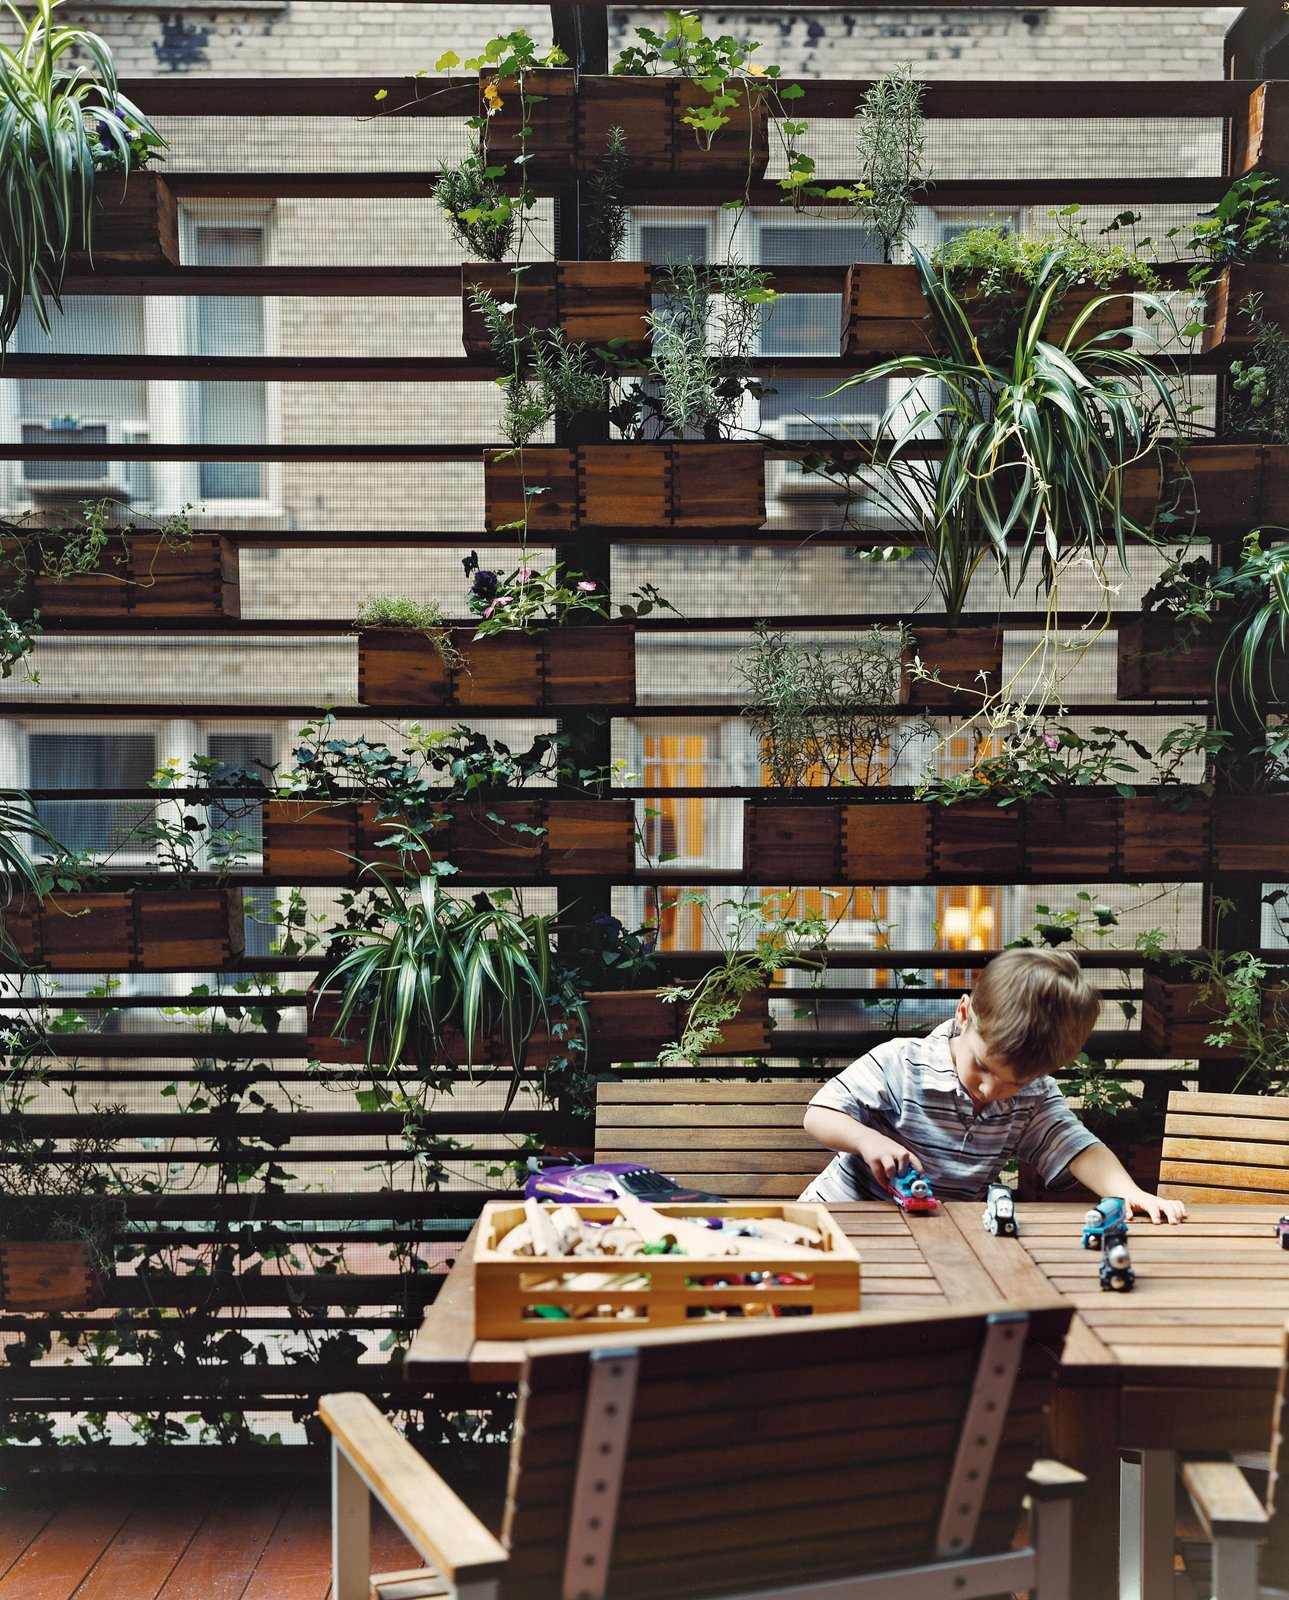 The Zizmors' son plays in front of a living wall created by urban landscaper Kari Elwell Katzander of Mingo Design.  Plants by Nikki Webster from Outdoor Living in NYC